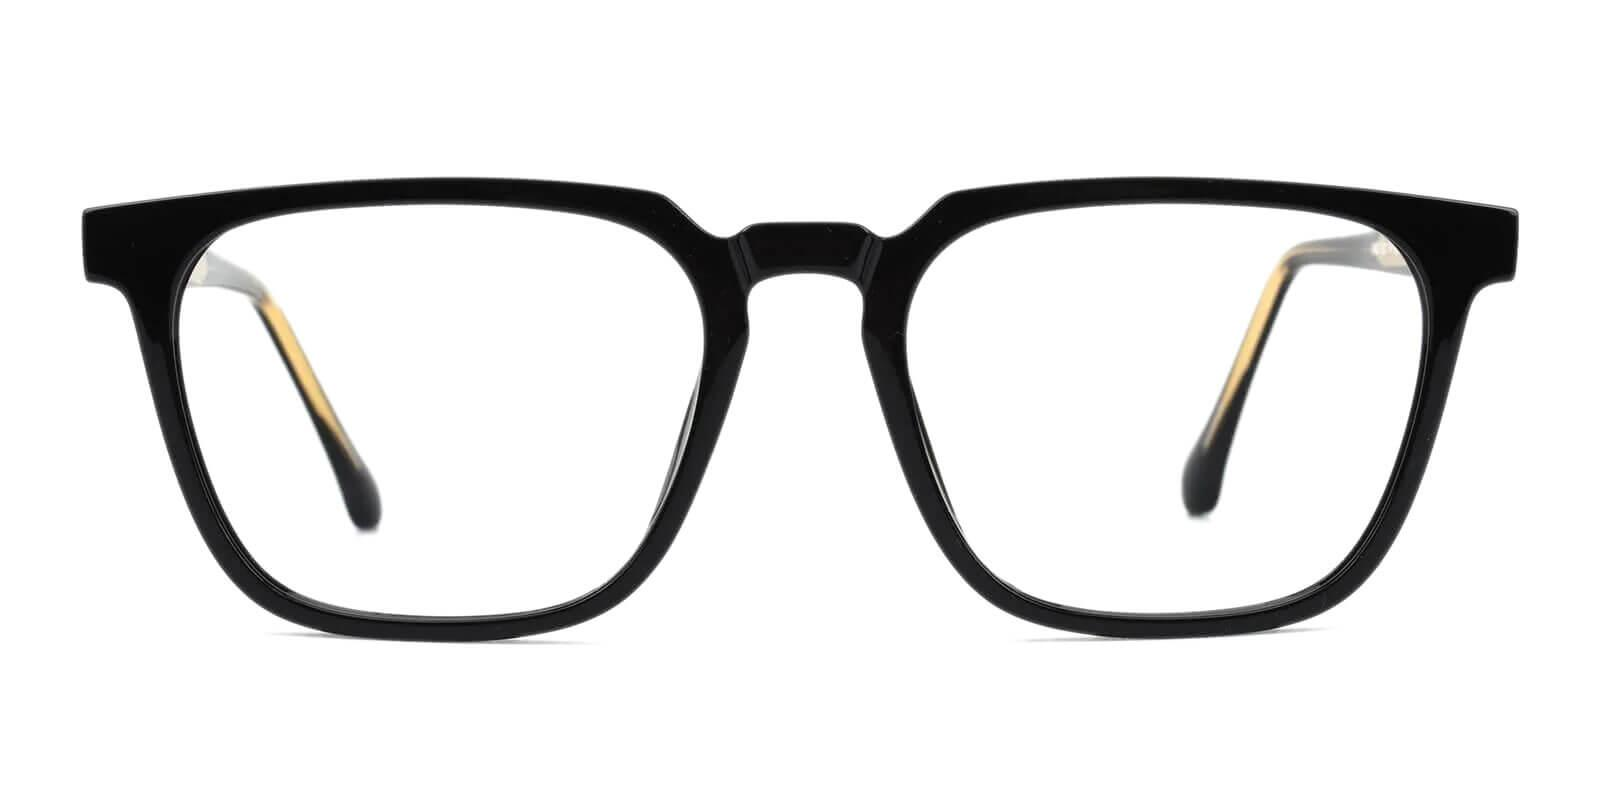 Oriana Black Acetate Eyeglasses , SpringHinges , UniversalBridgeFit Frames from ABBE Glasses